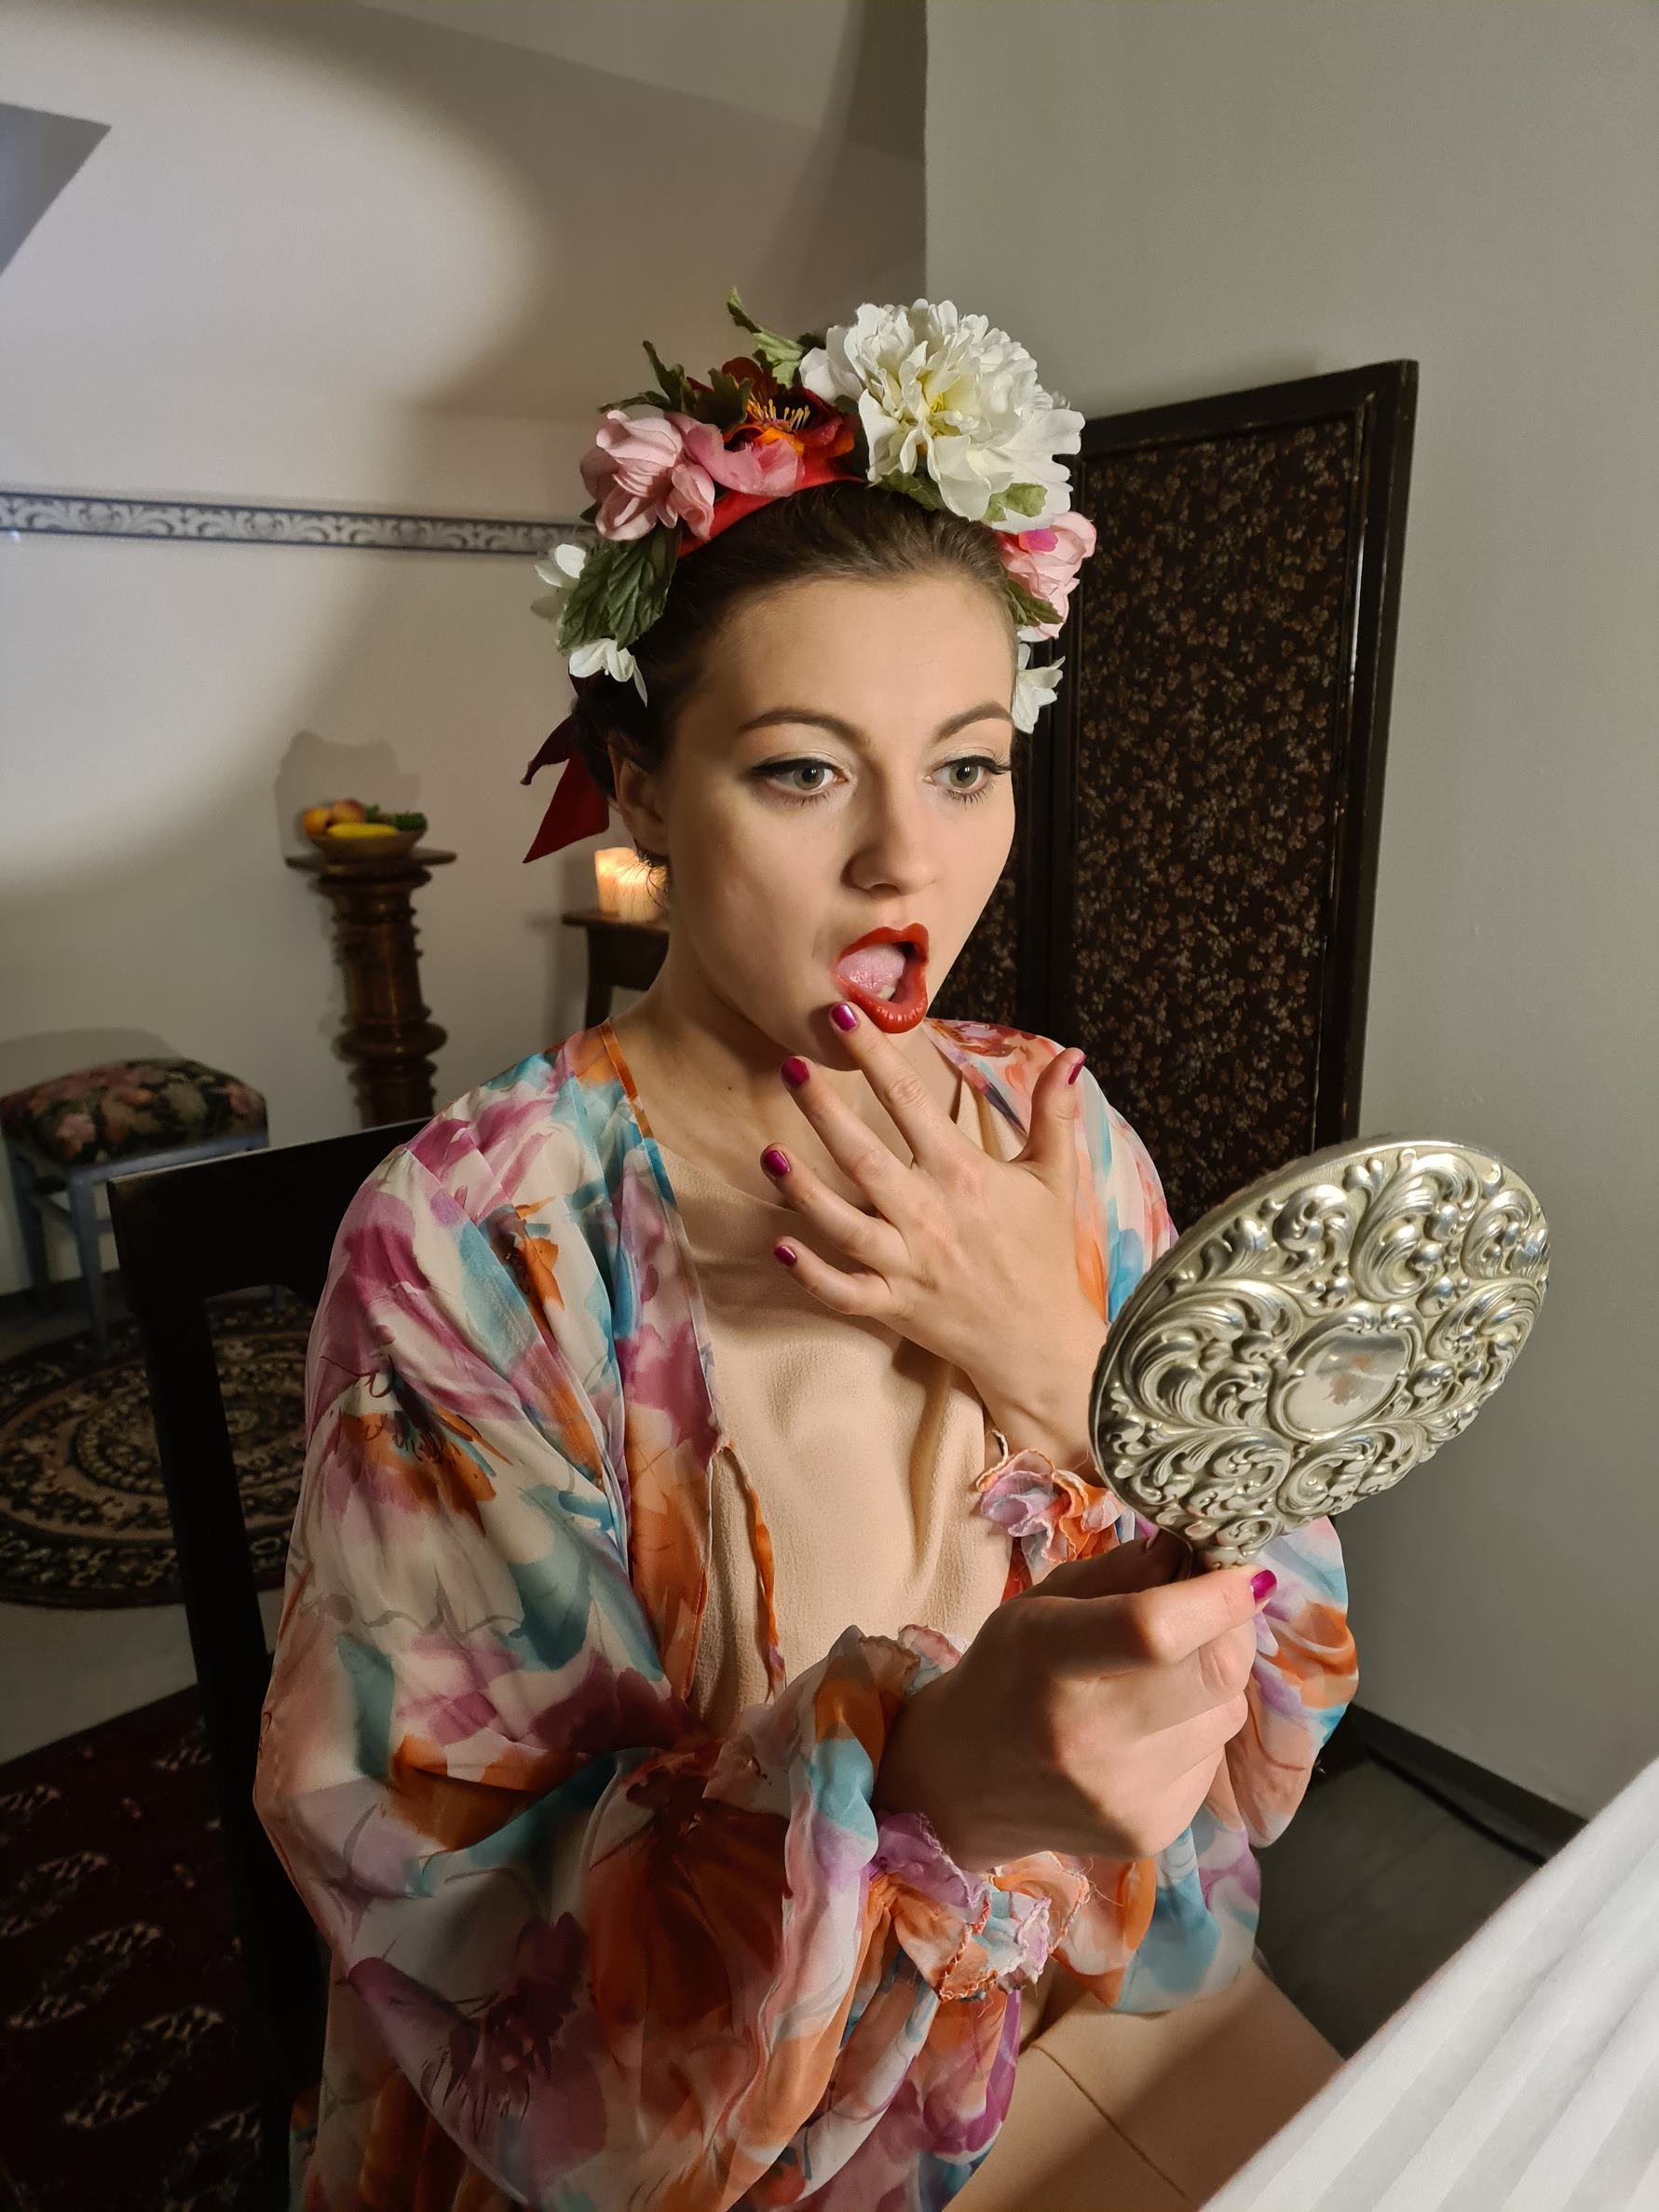 A woman wearing a flower garland in her hair checks her red lipstick in a handheld mirror. She is sat in a bedroom.